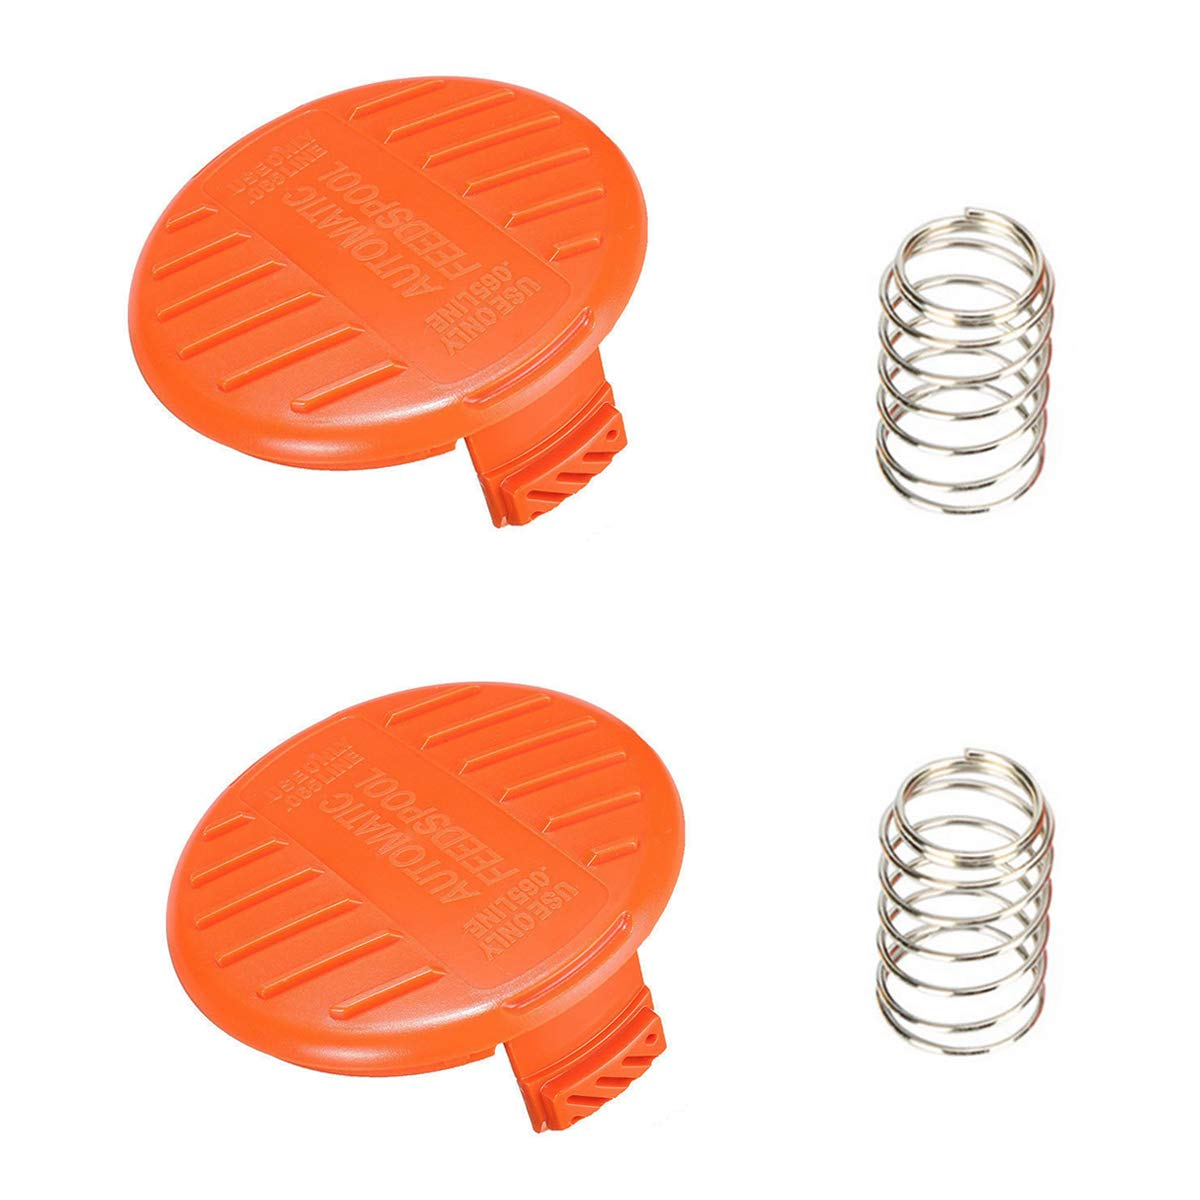 "Ketofa 385022-03 Replacement Spool Cap Covers and Spring Compatible with Black and Decker AFS Trimmer GH600/NST2018 NST2118 RC-100-P Weed Eater Bump Cover with Spring Use Only 0.065"" Line"